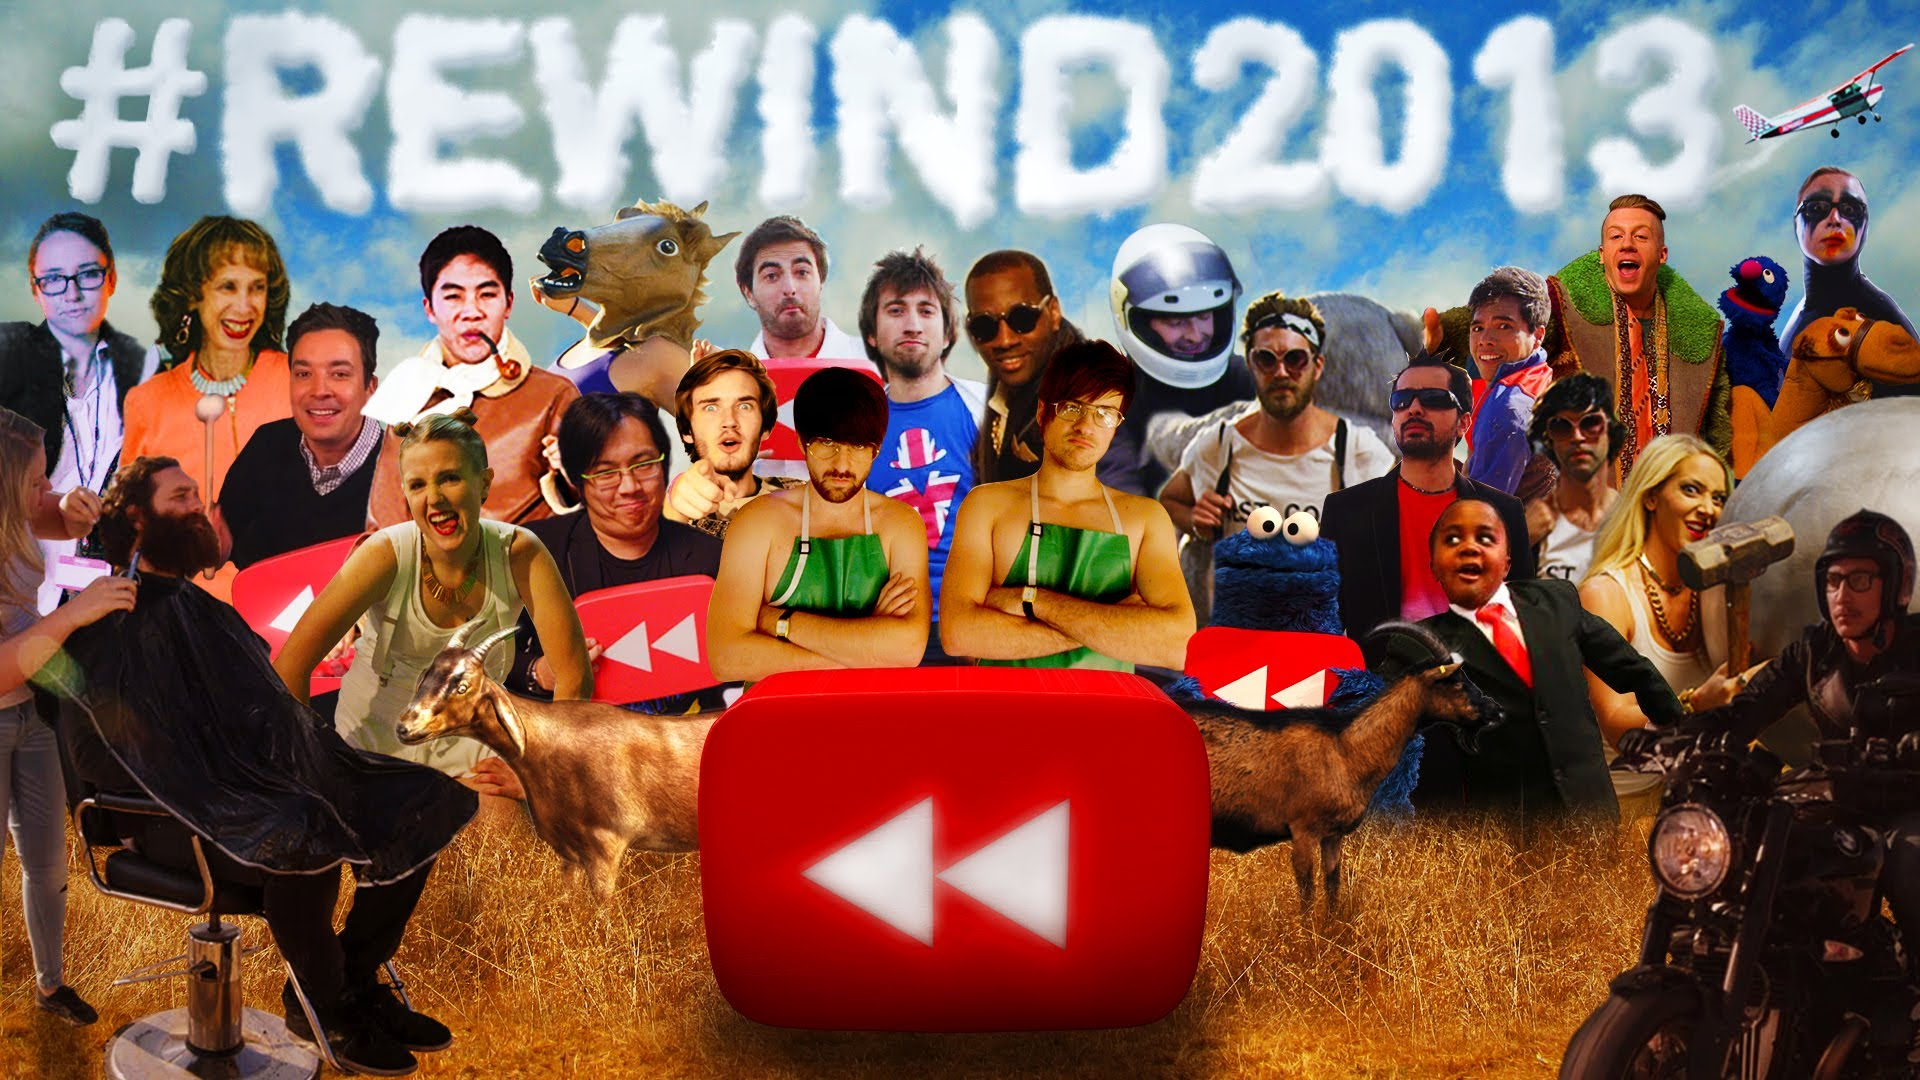 youtube rewind 2013 say